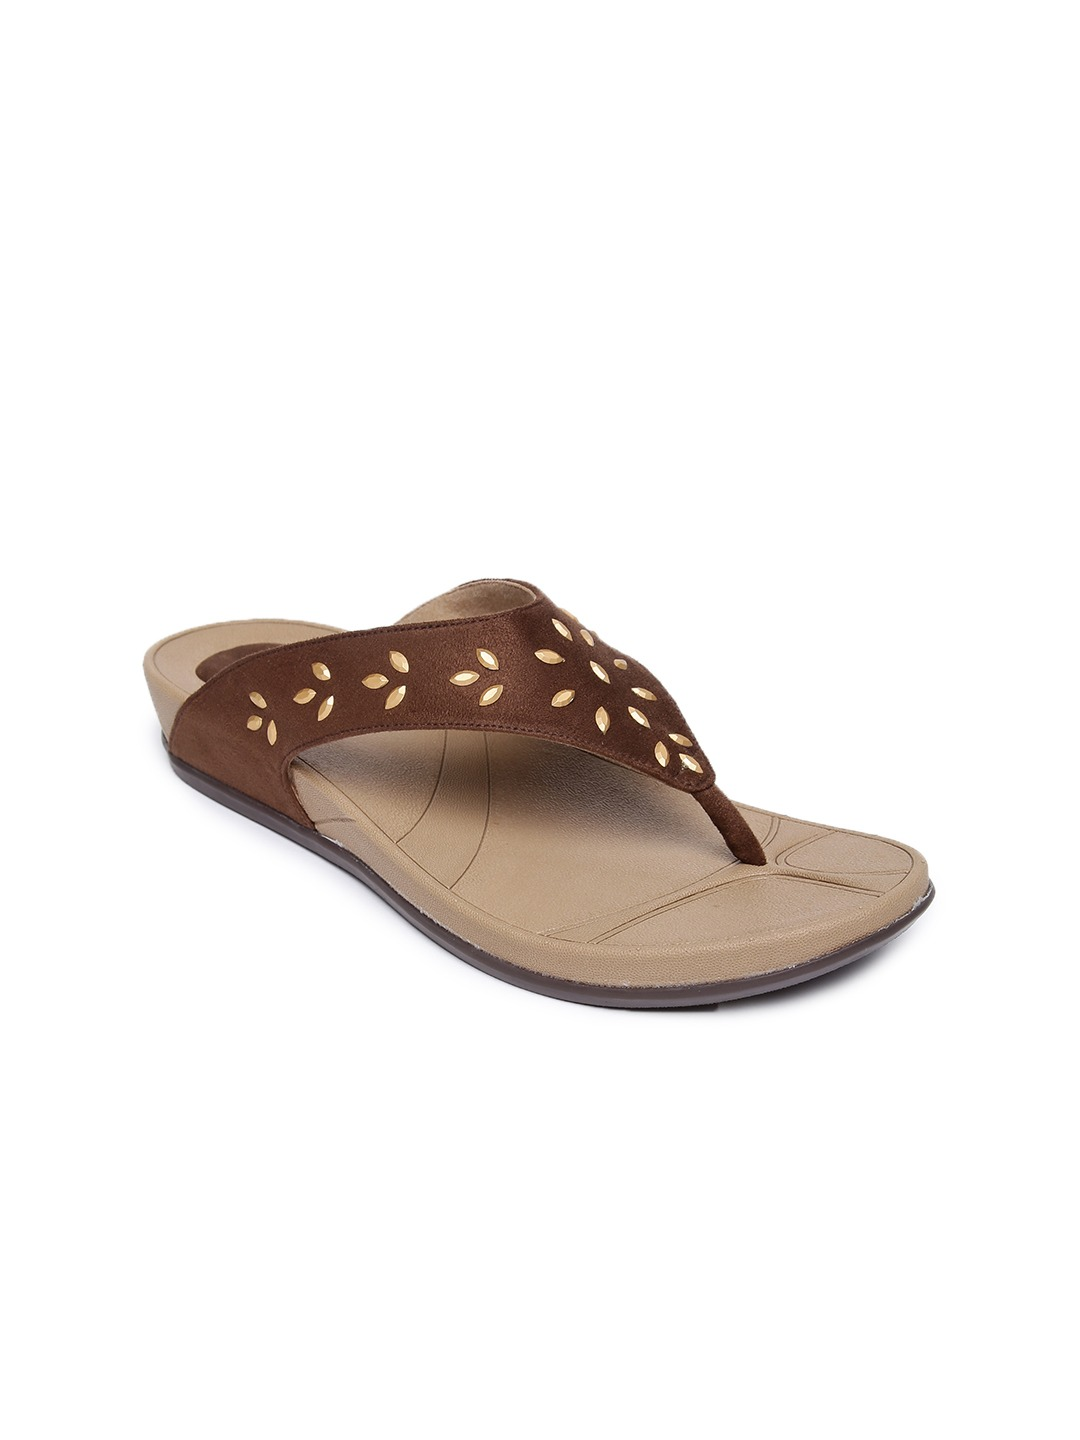 Brown Synthetic Open Toe Flats